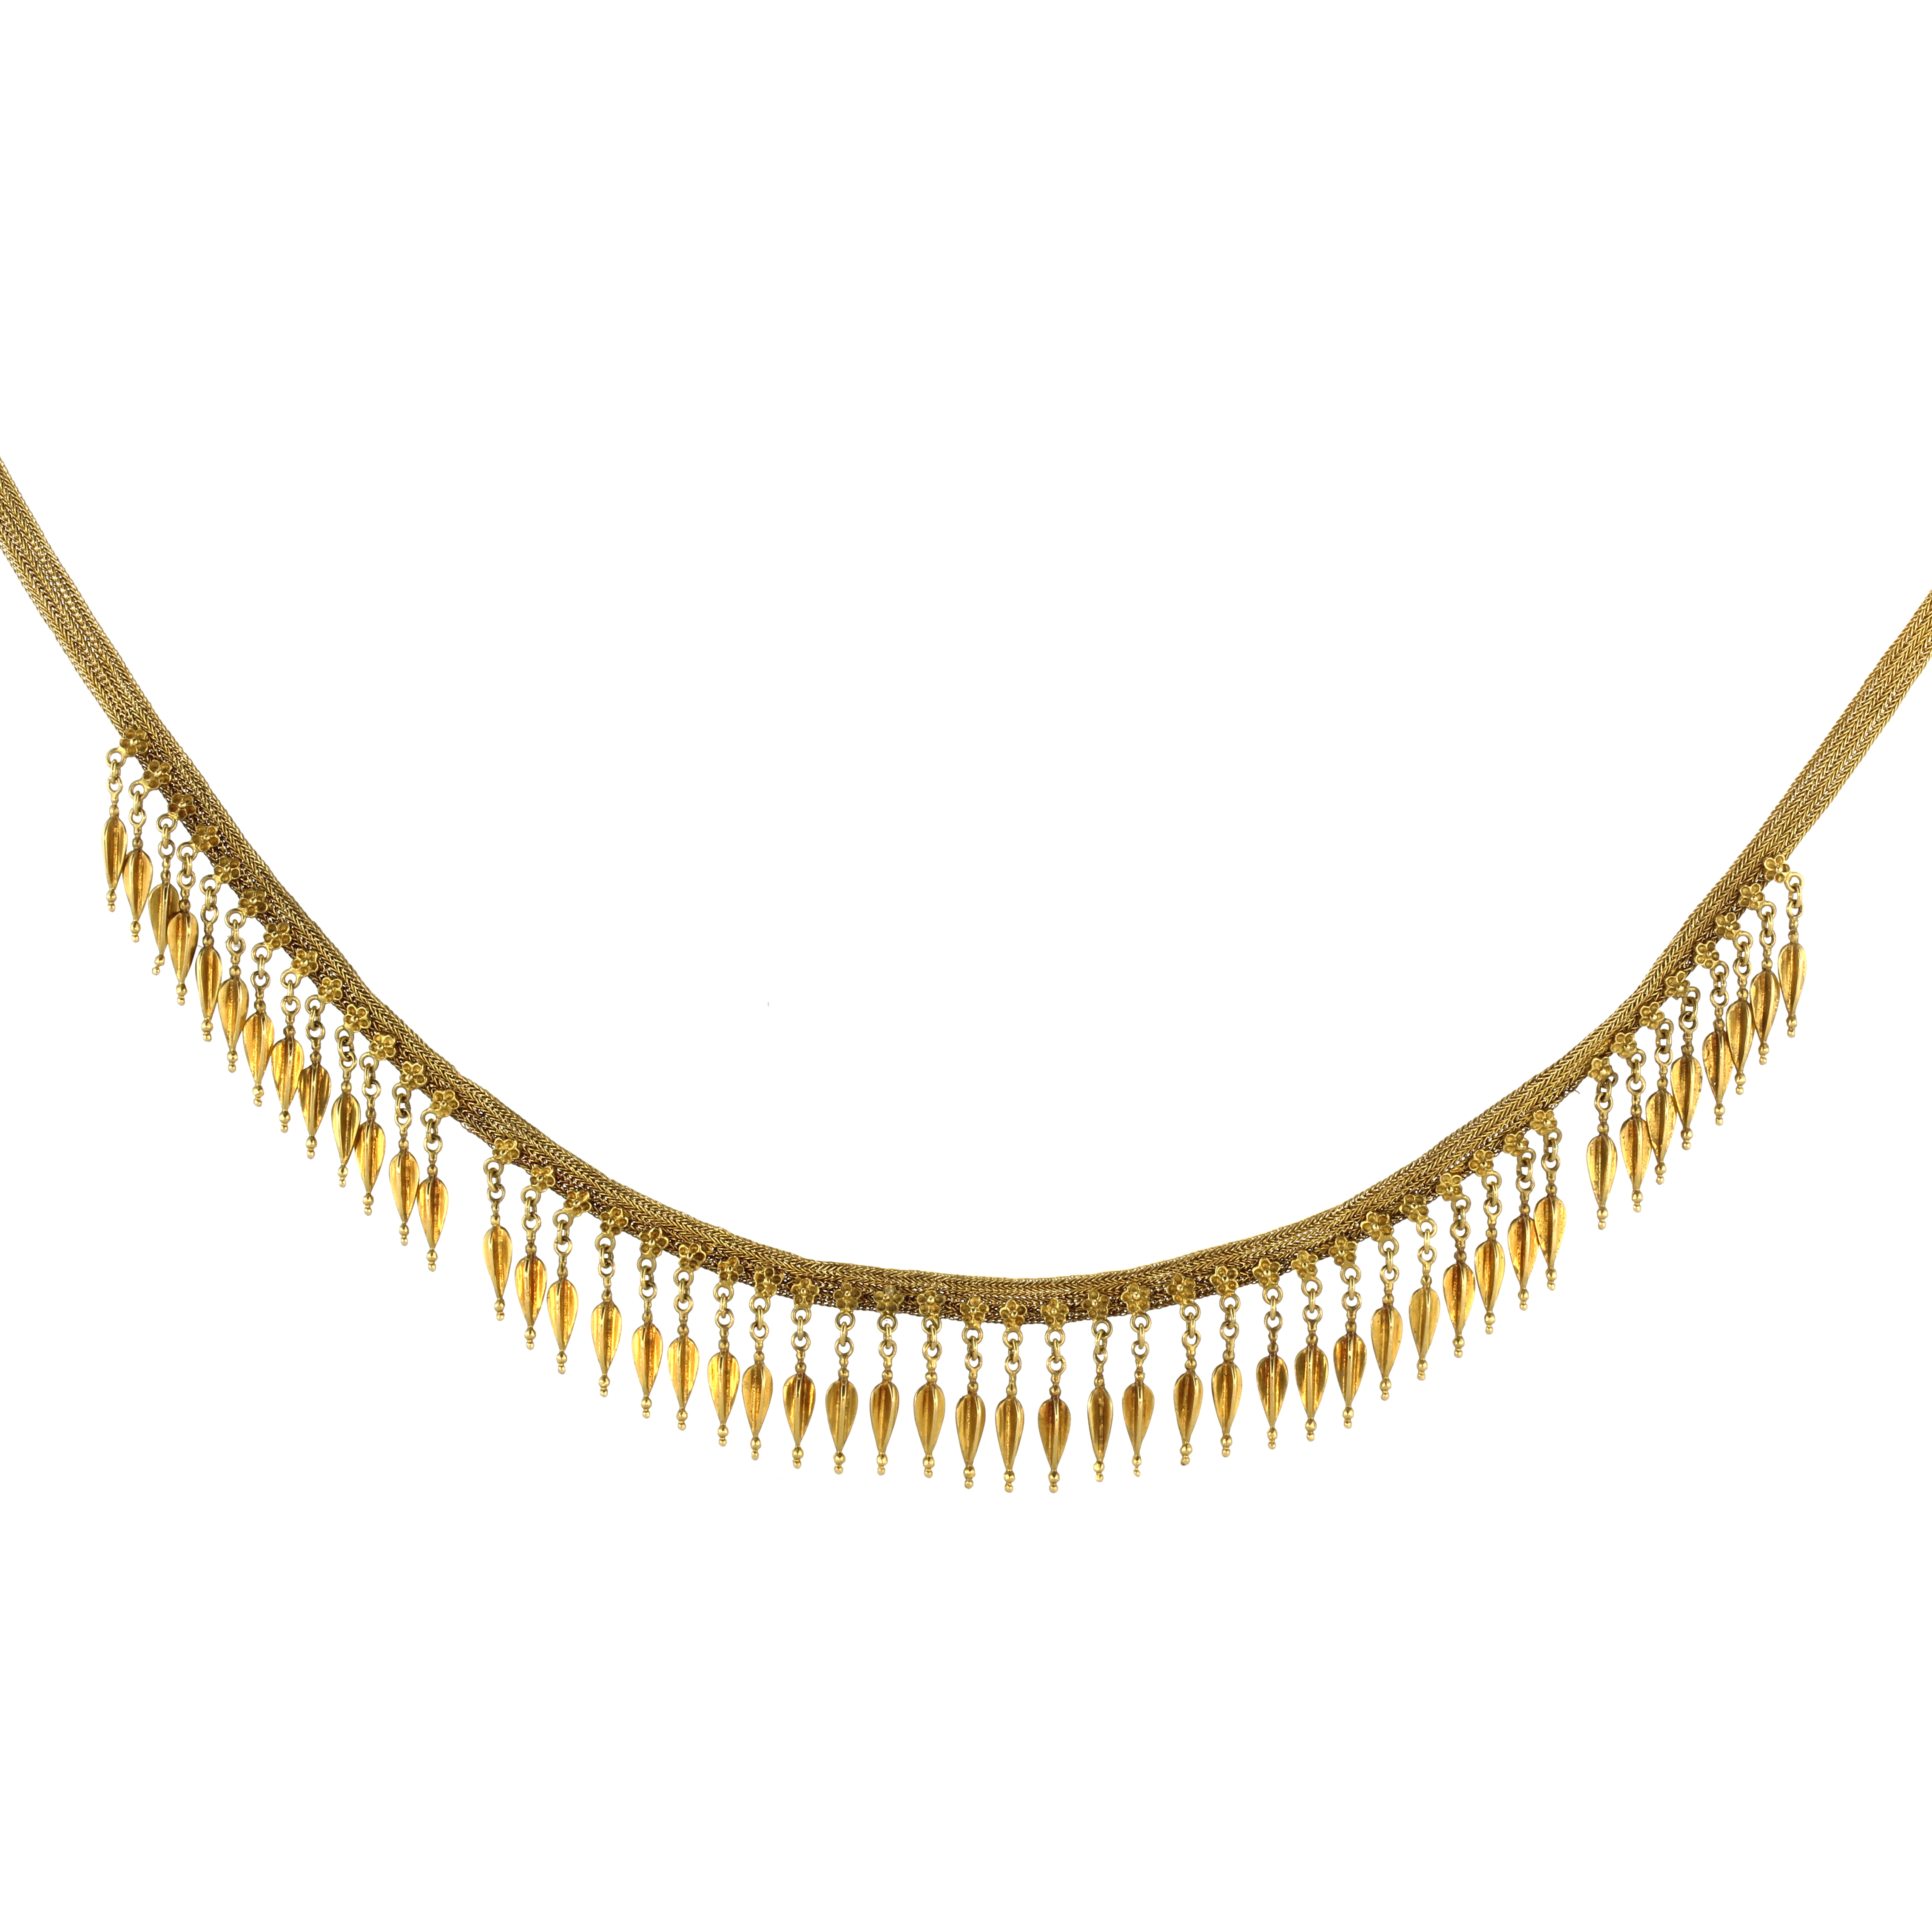 Los 50 - An Ancient Greecian / Hellenistic style necklace in 18ct yellow gold, designed after the necklace